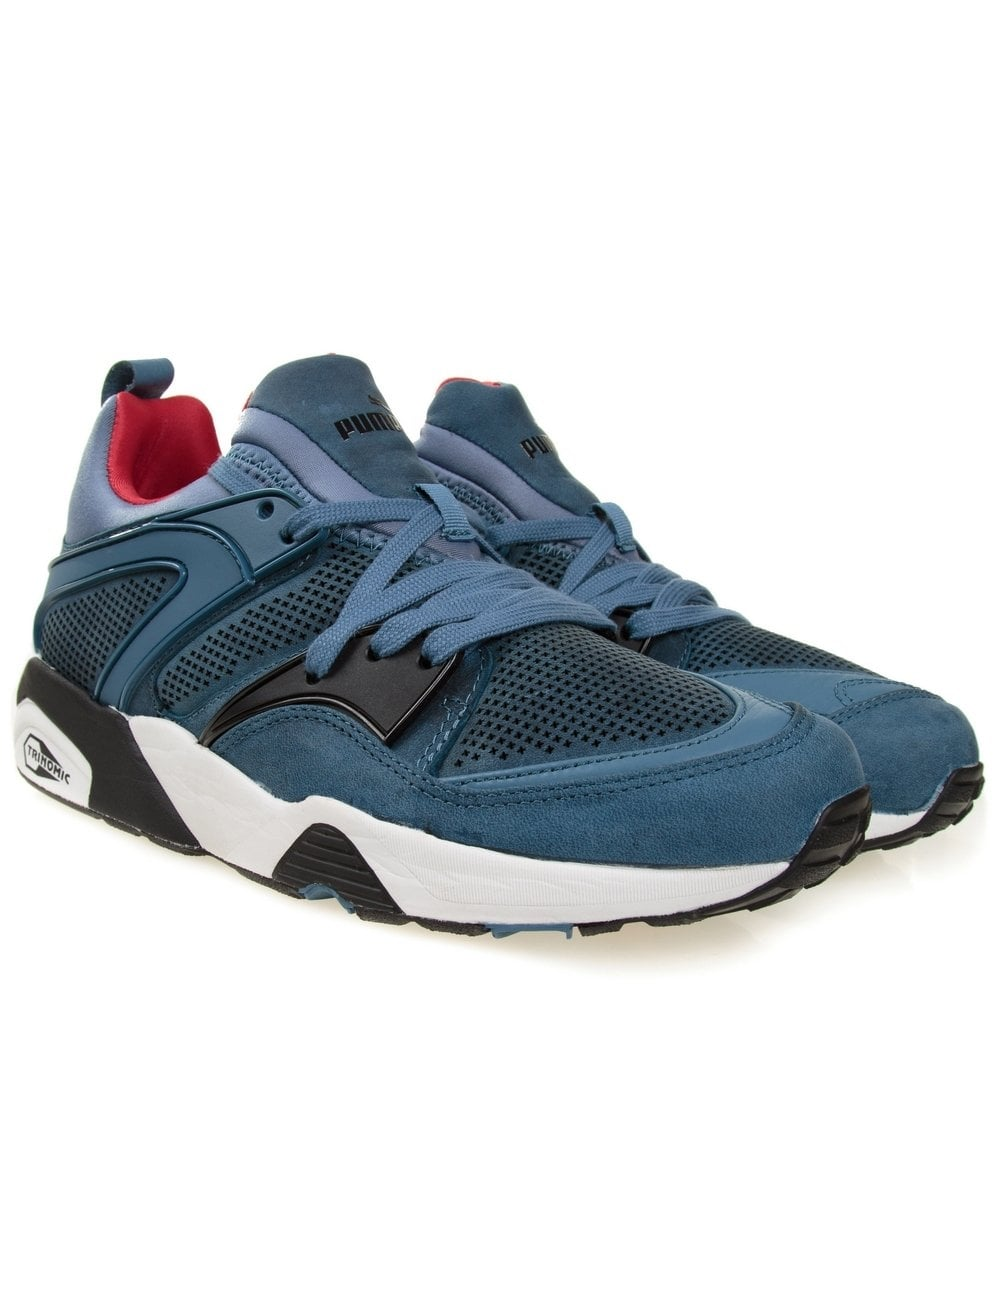 4df51b2fad34 Puma Trinomic Blaze Of Glory - Blue (Tech Edition) - Footwear from ...